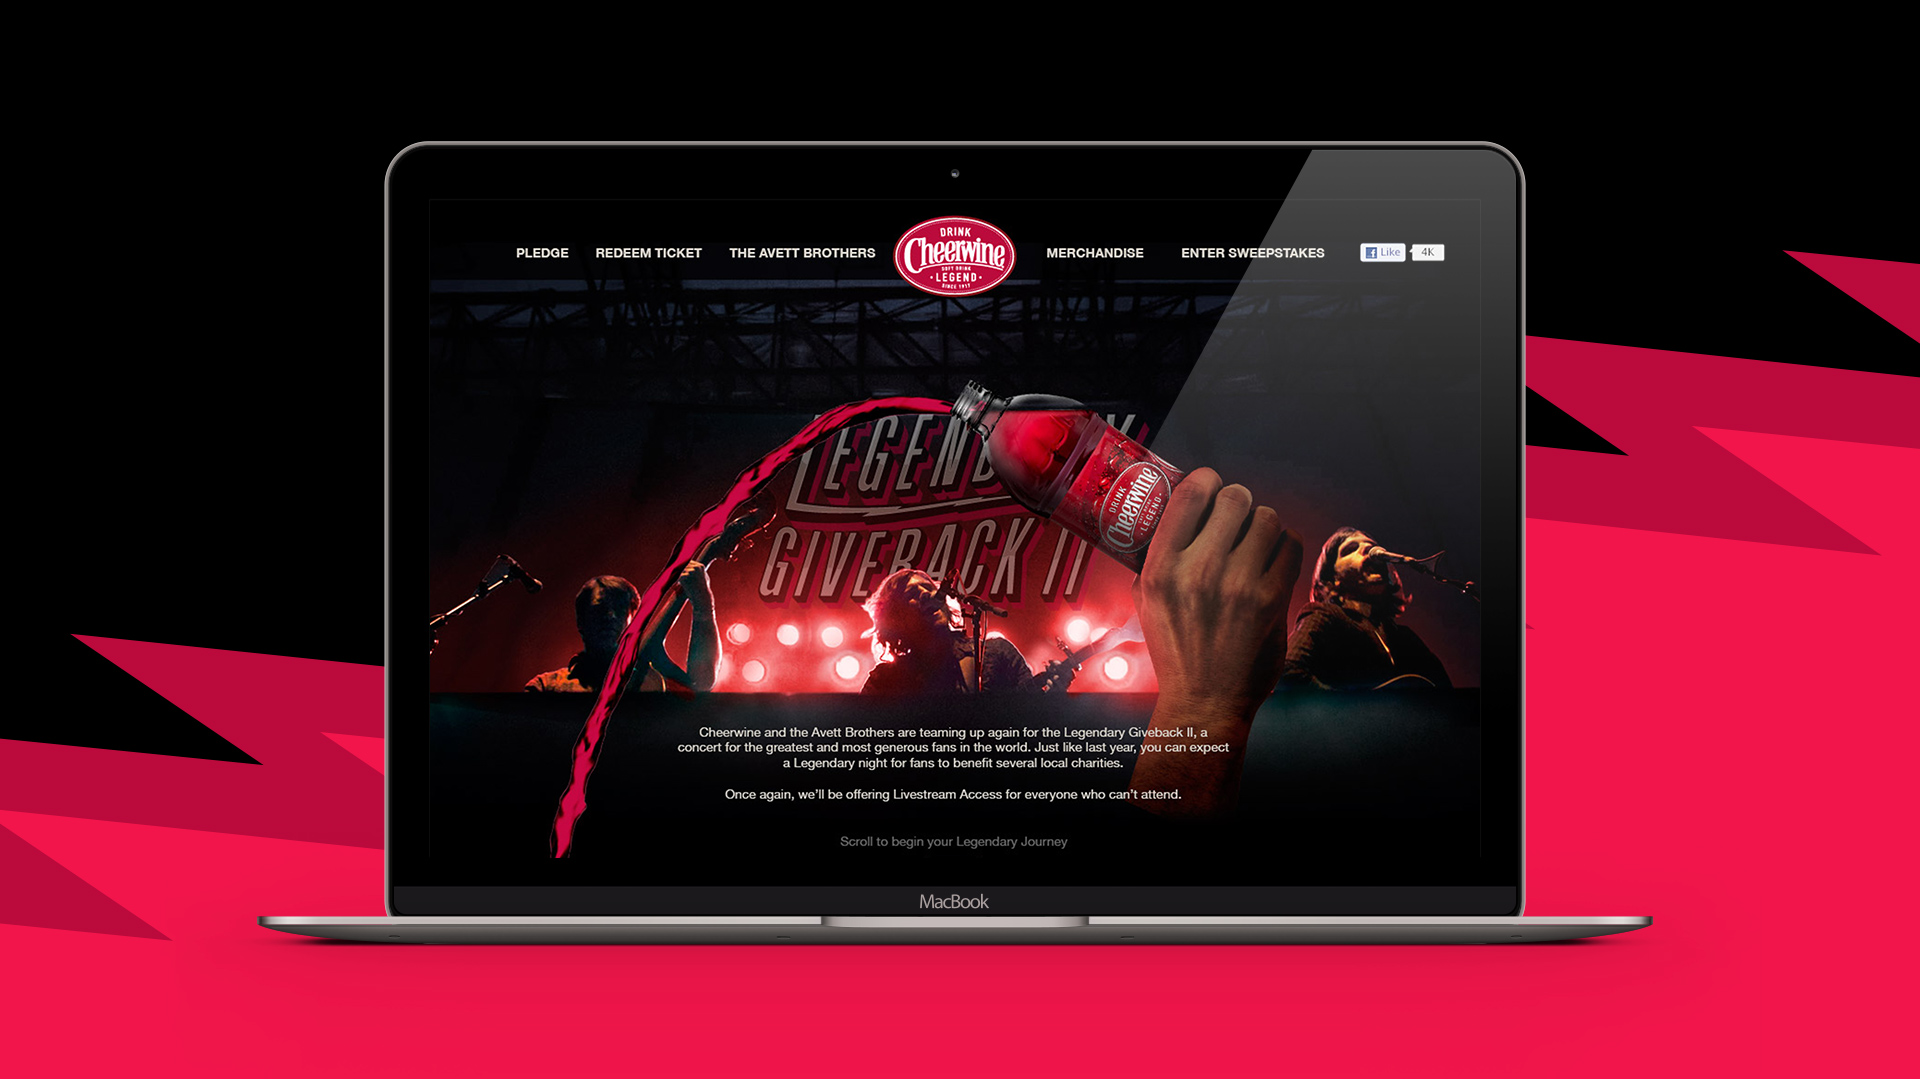 DANG_cheerwine_slide_website